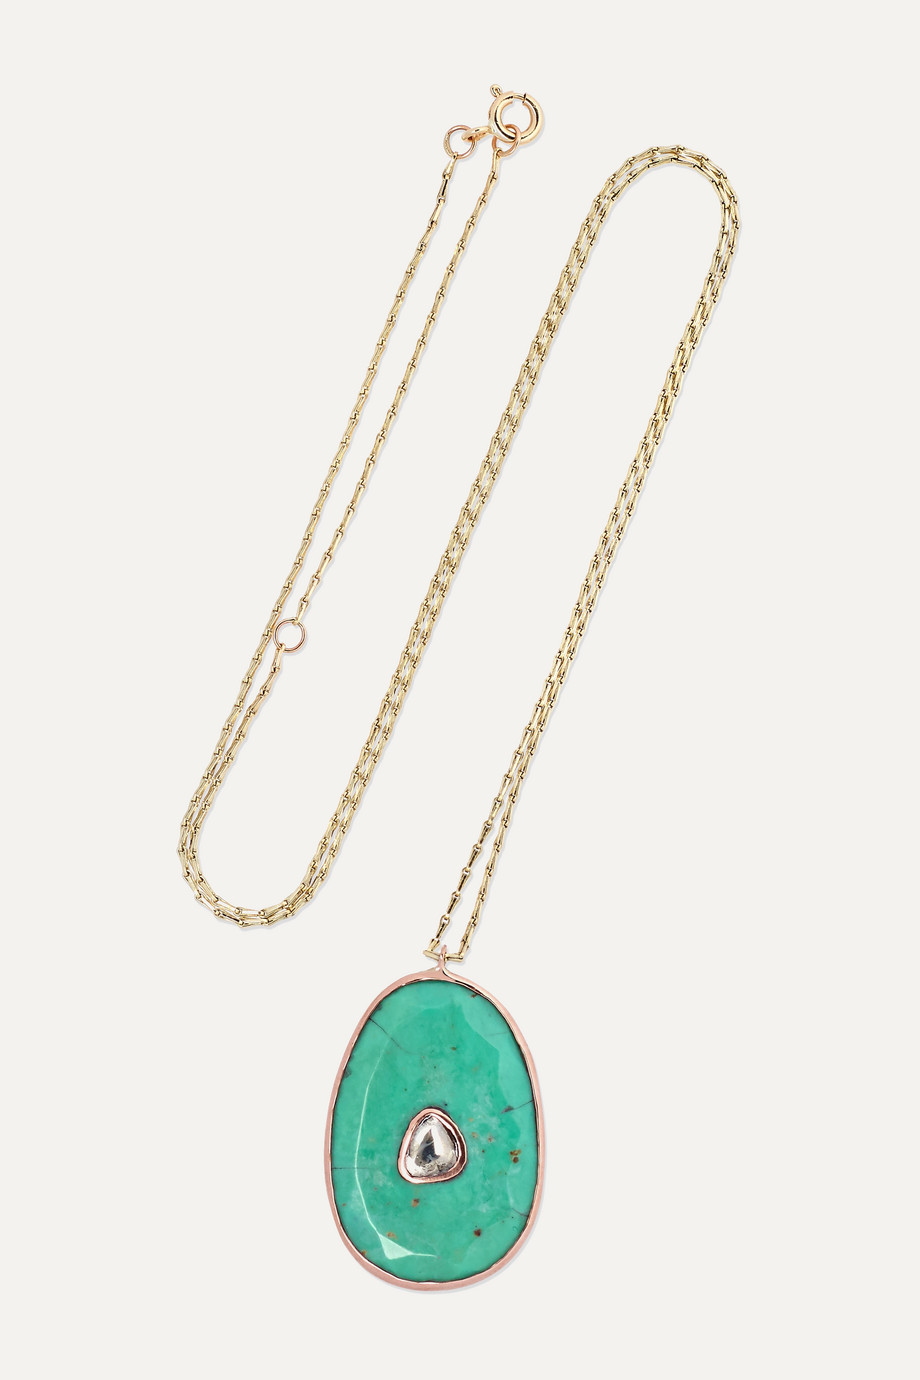 PASCALE MONVOISIN Simone 9-karat yellow and rose gold, turquoise and diamond necklace